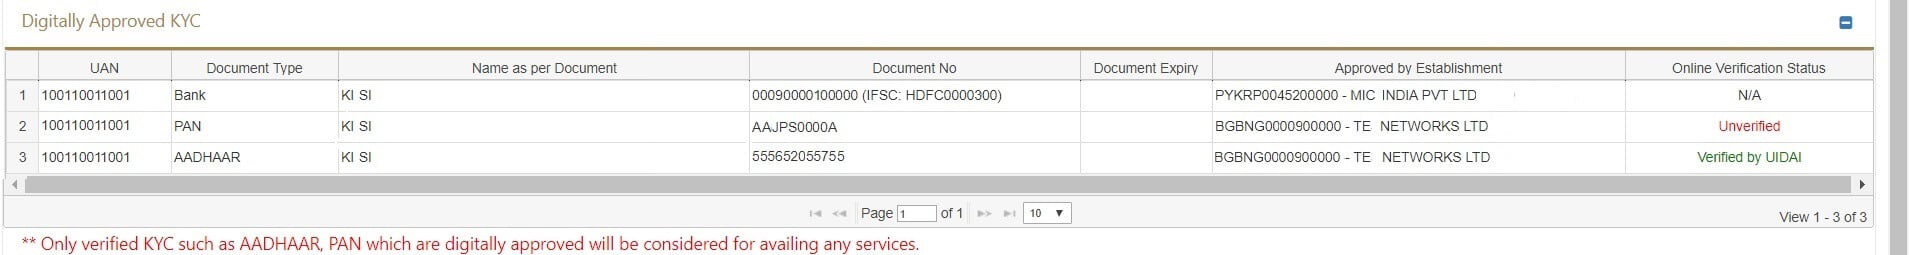 PAN Unverified in KYC at UAN website